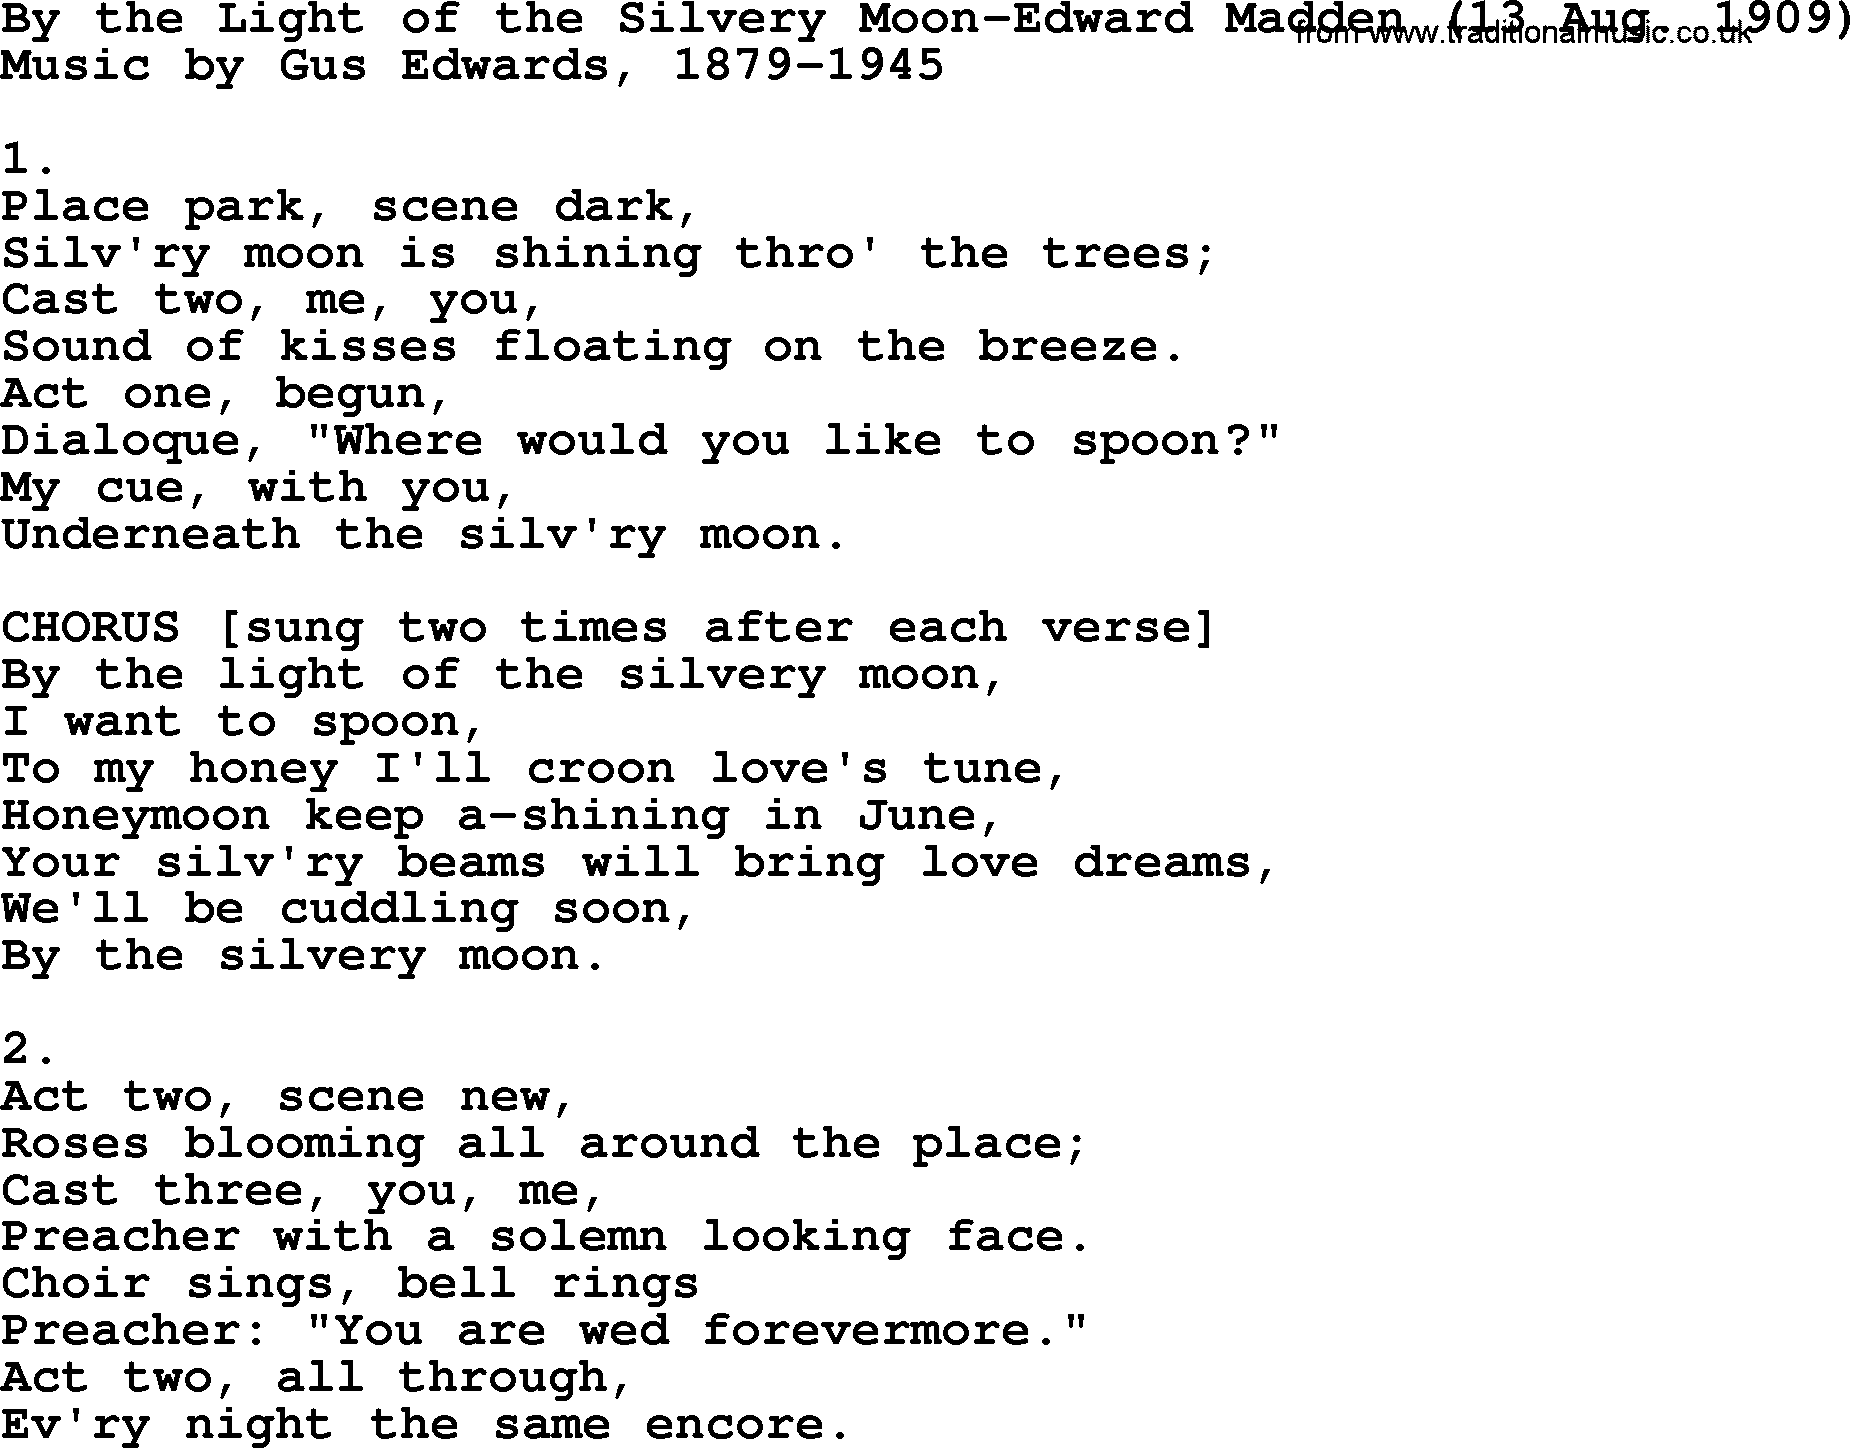 World War eWW1Era Song Lyrics for By The Light The Silvery